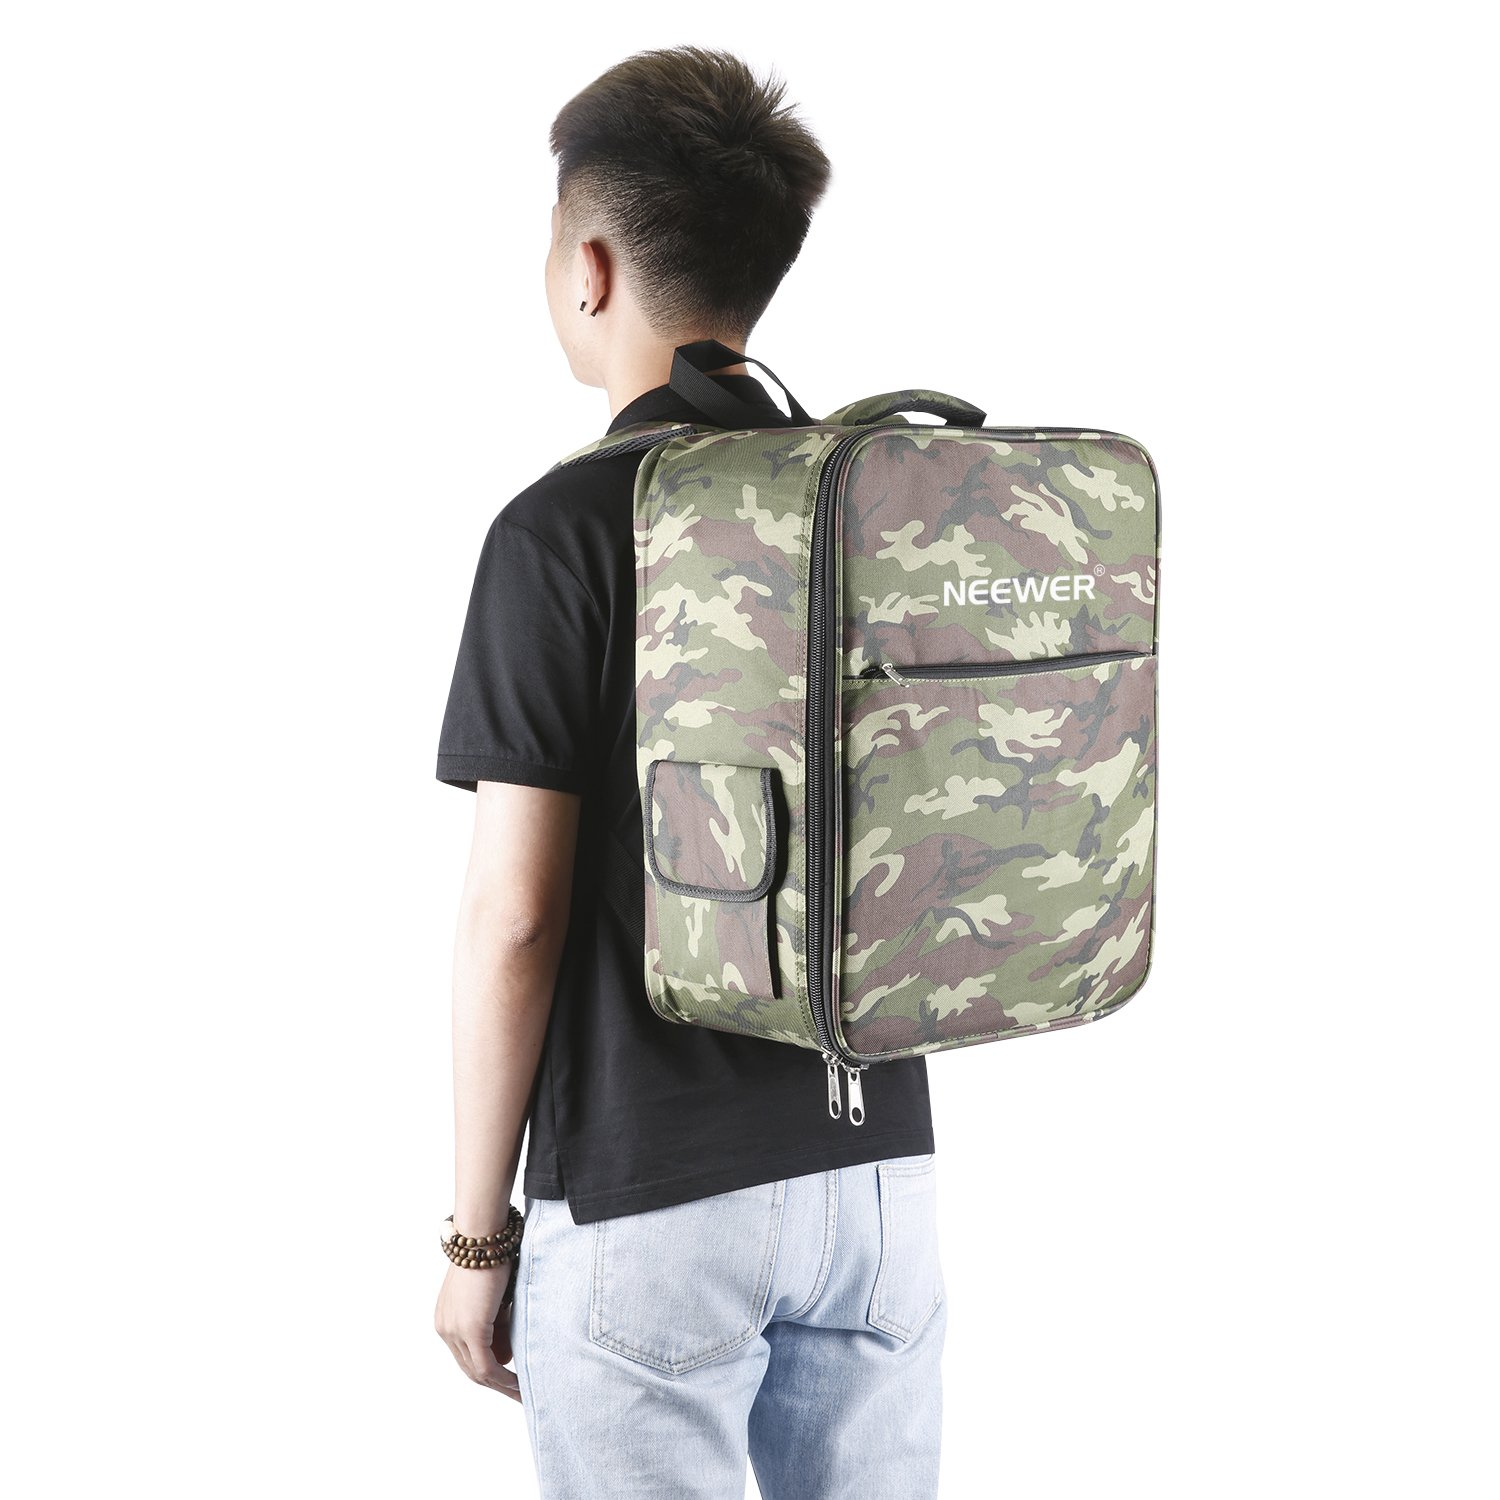 Neewer Multi-Function Waterproof Backpack Bag Case for DJI Phantom 1 FC40 2 2 Vision 2 Vision+ 3, DJI 3 Professional, Advanced, Standard, 4K Cameras and Accessories(Camouflage) by Neewer (Image #7)